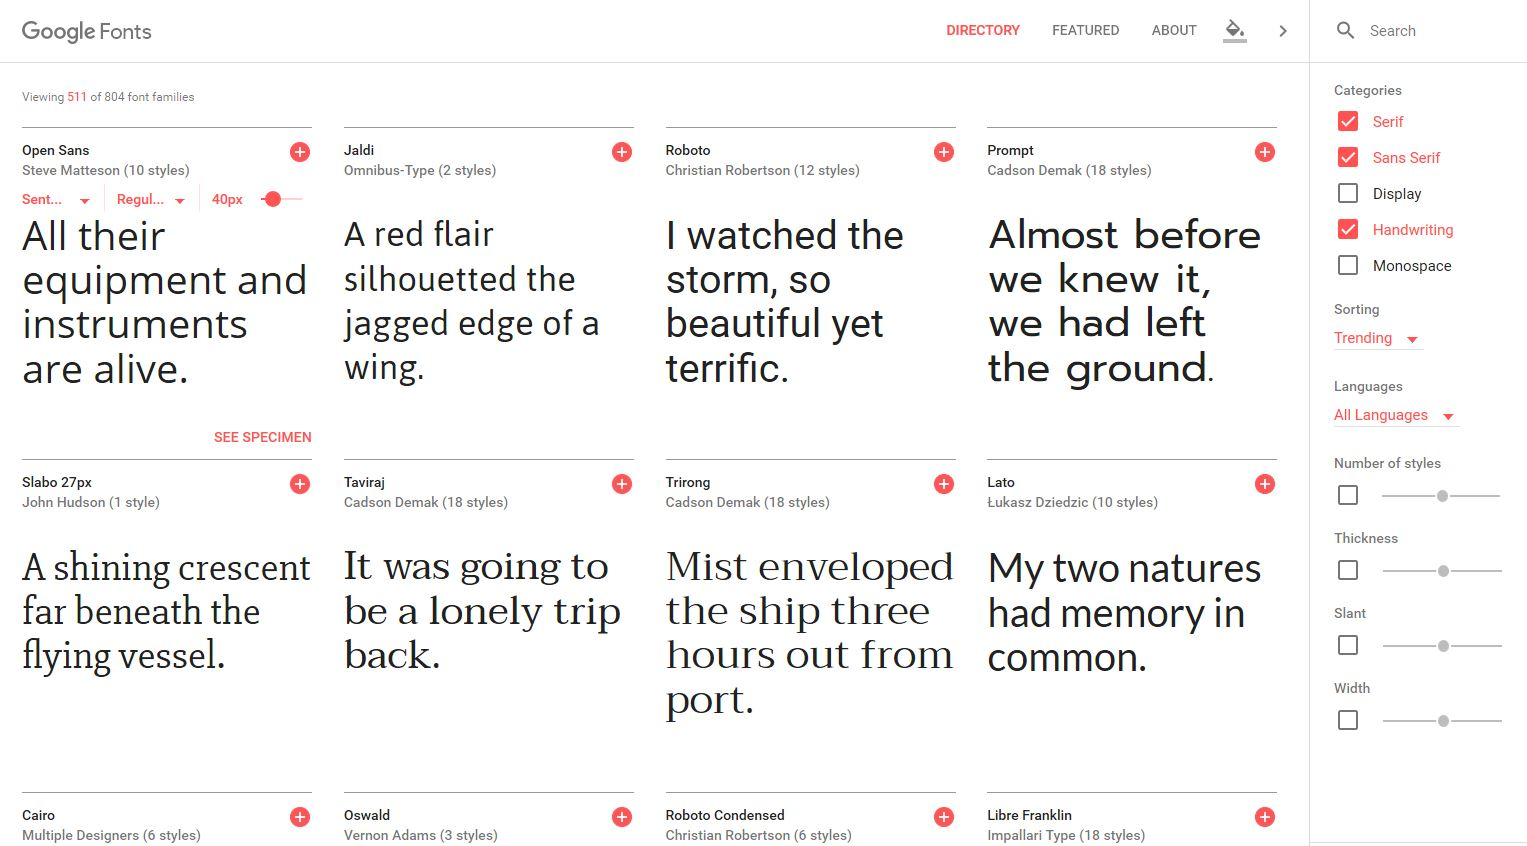 Google Fonts Directory New Website Redesign - Now More Intuitive